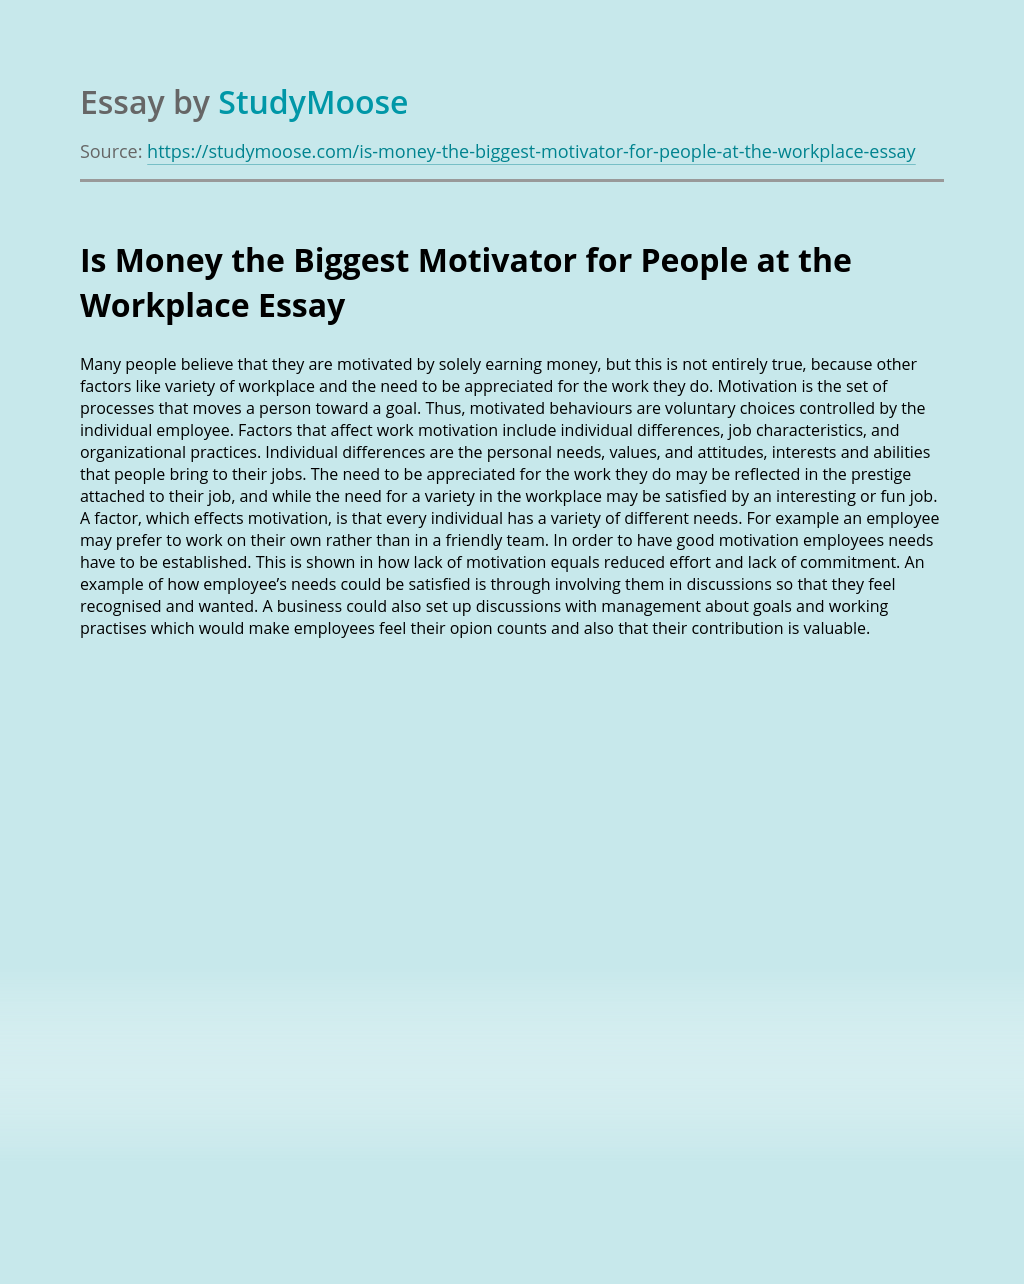 Is Money the Biggest Motivator for People at the Workplace